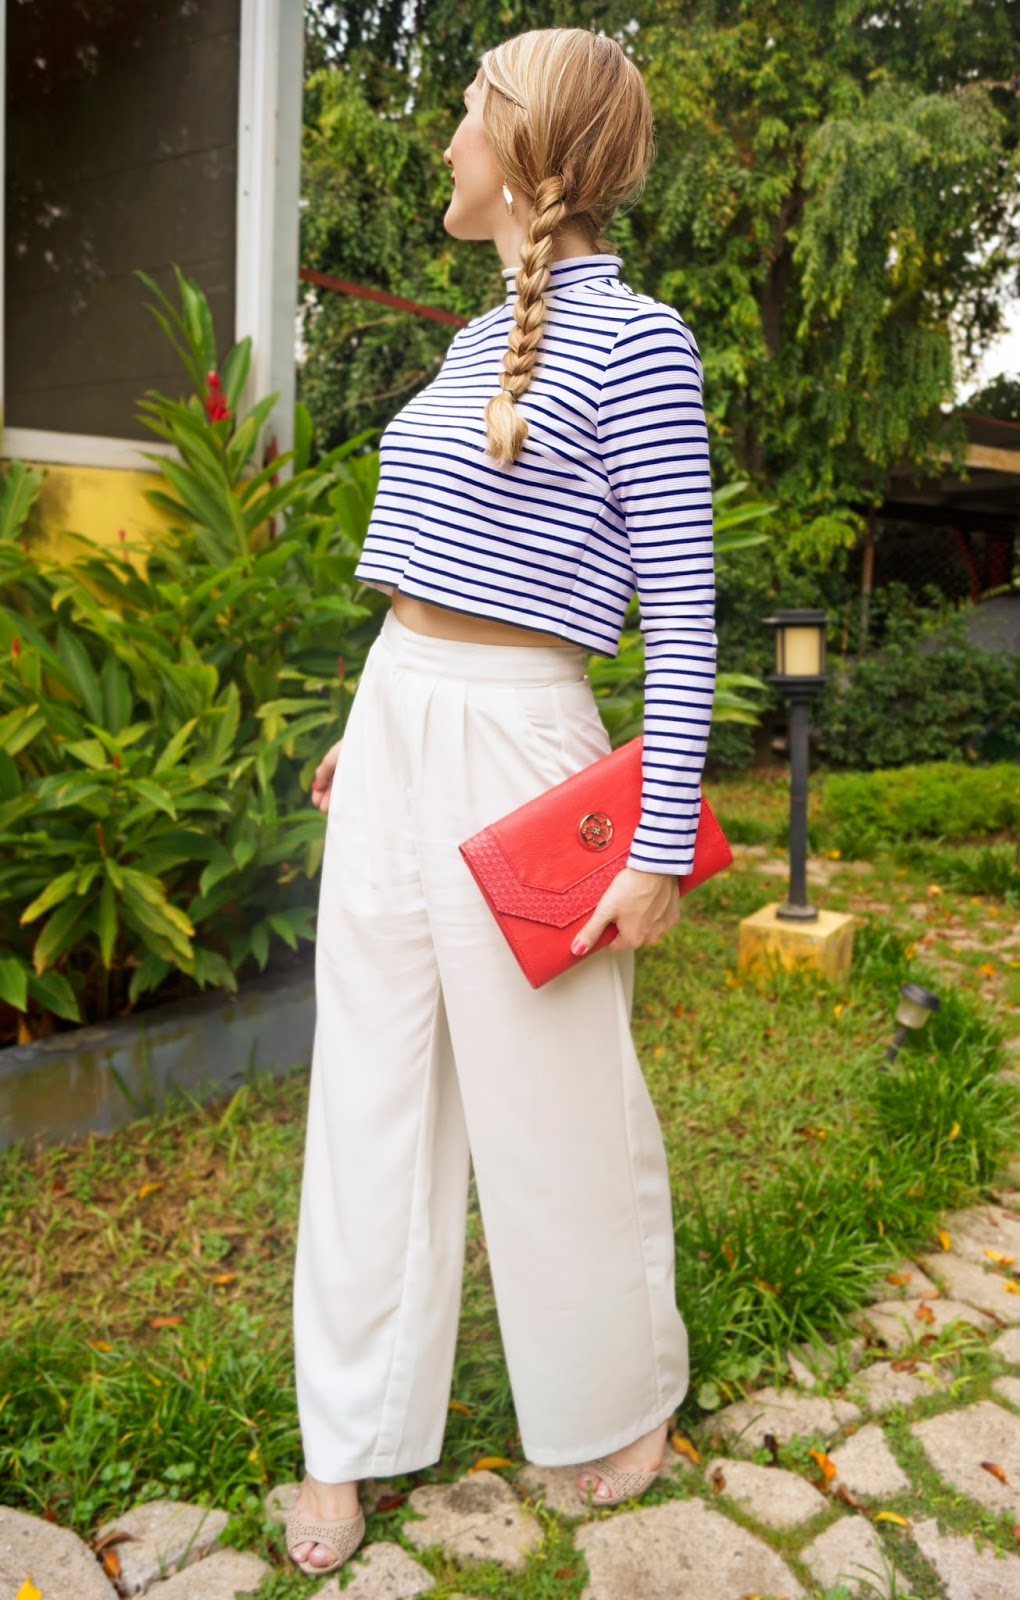 Nautical Outfit in stripes